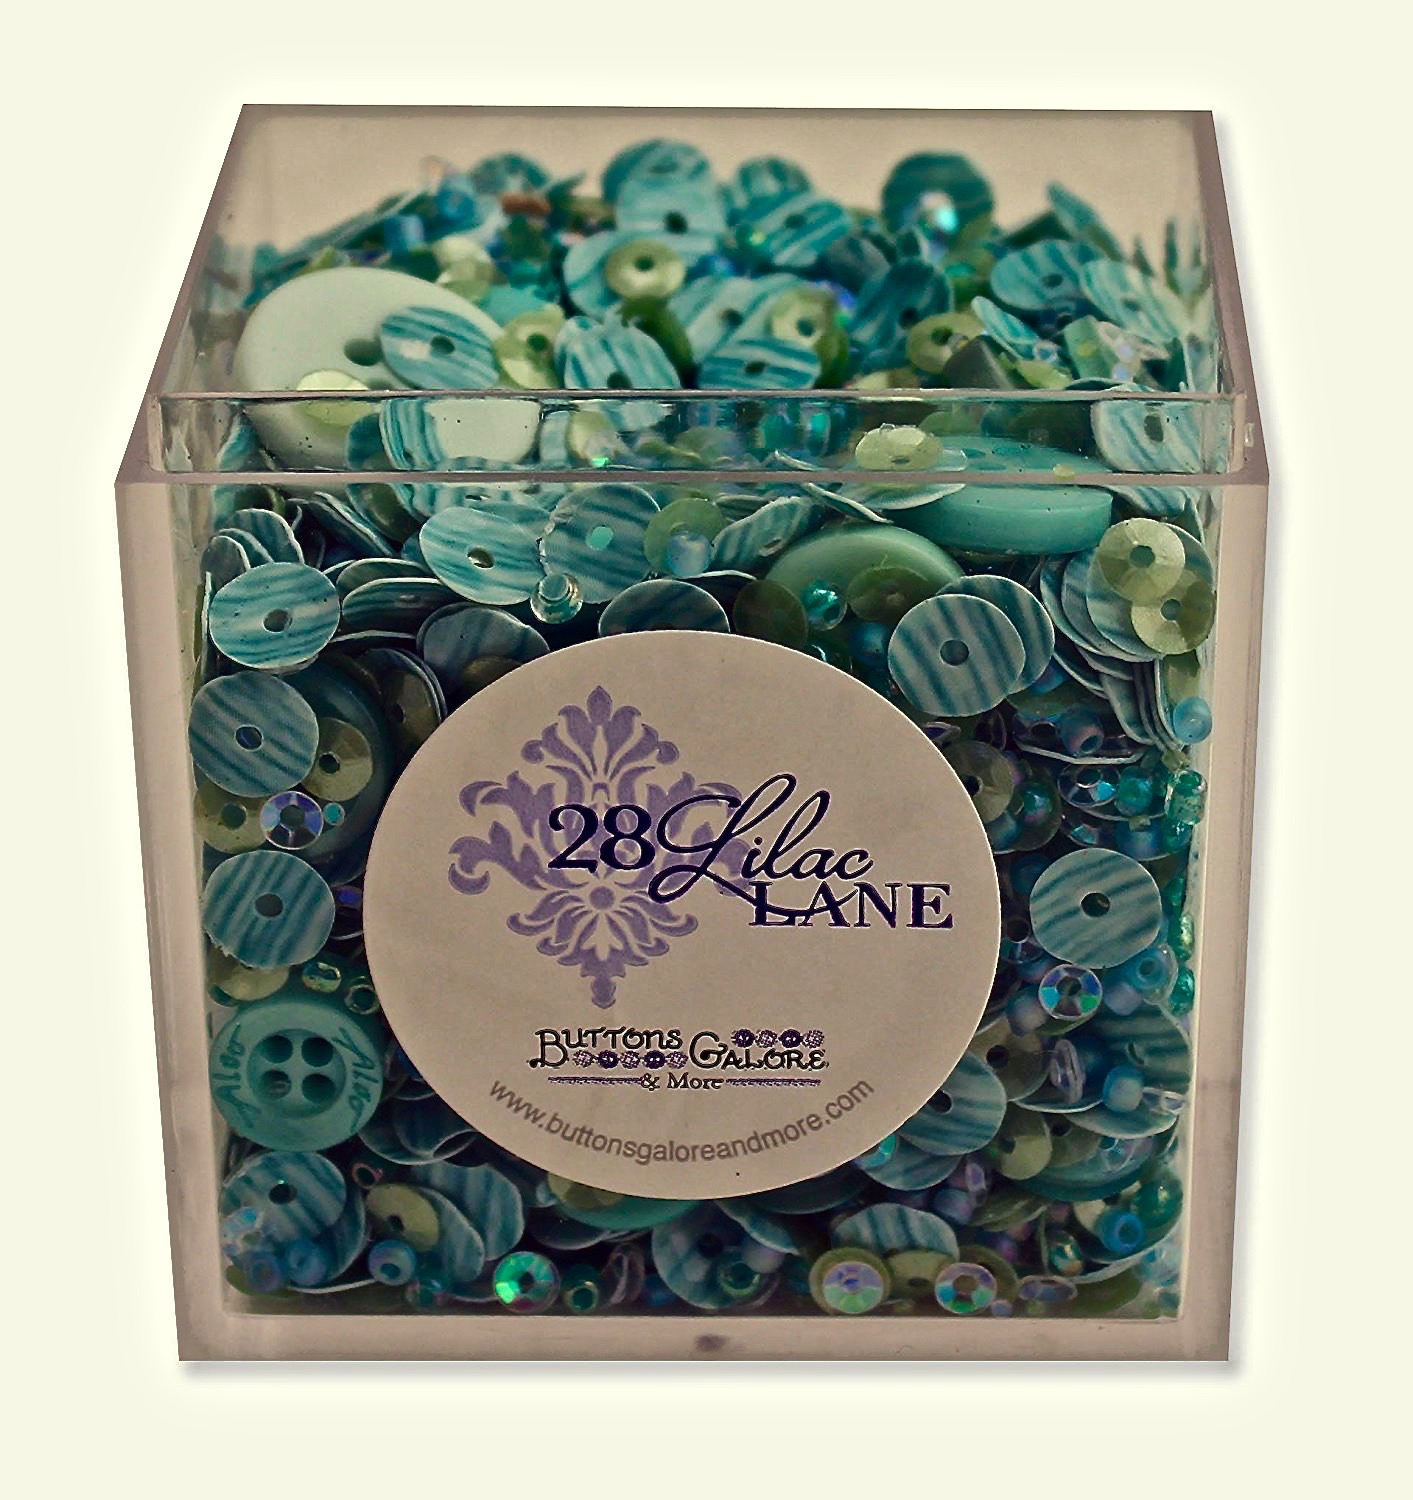 Buttons Galore 28 Lilac Lane Shaker Mix - Sea Glass